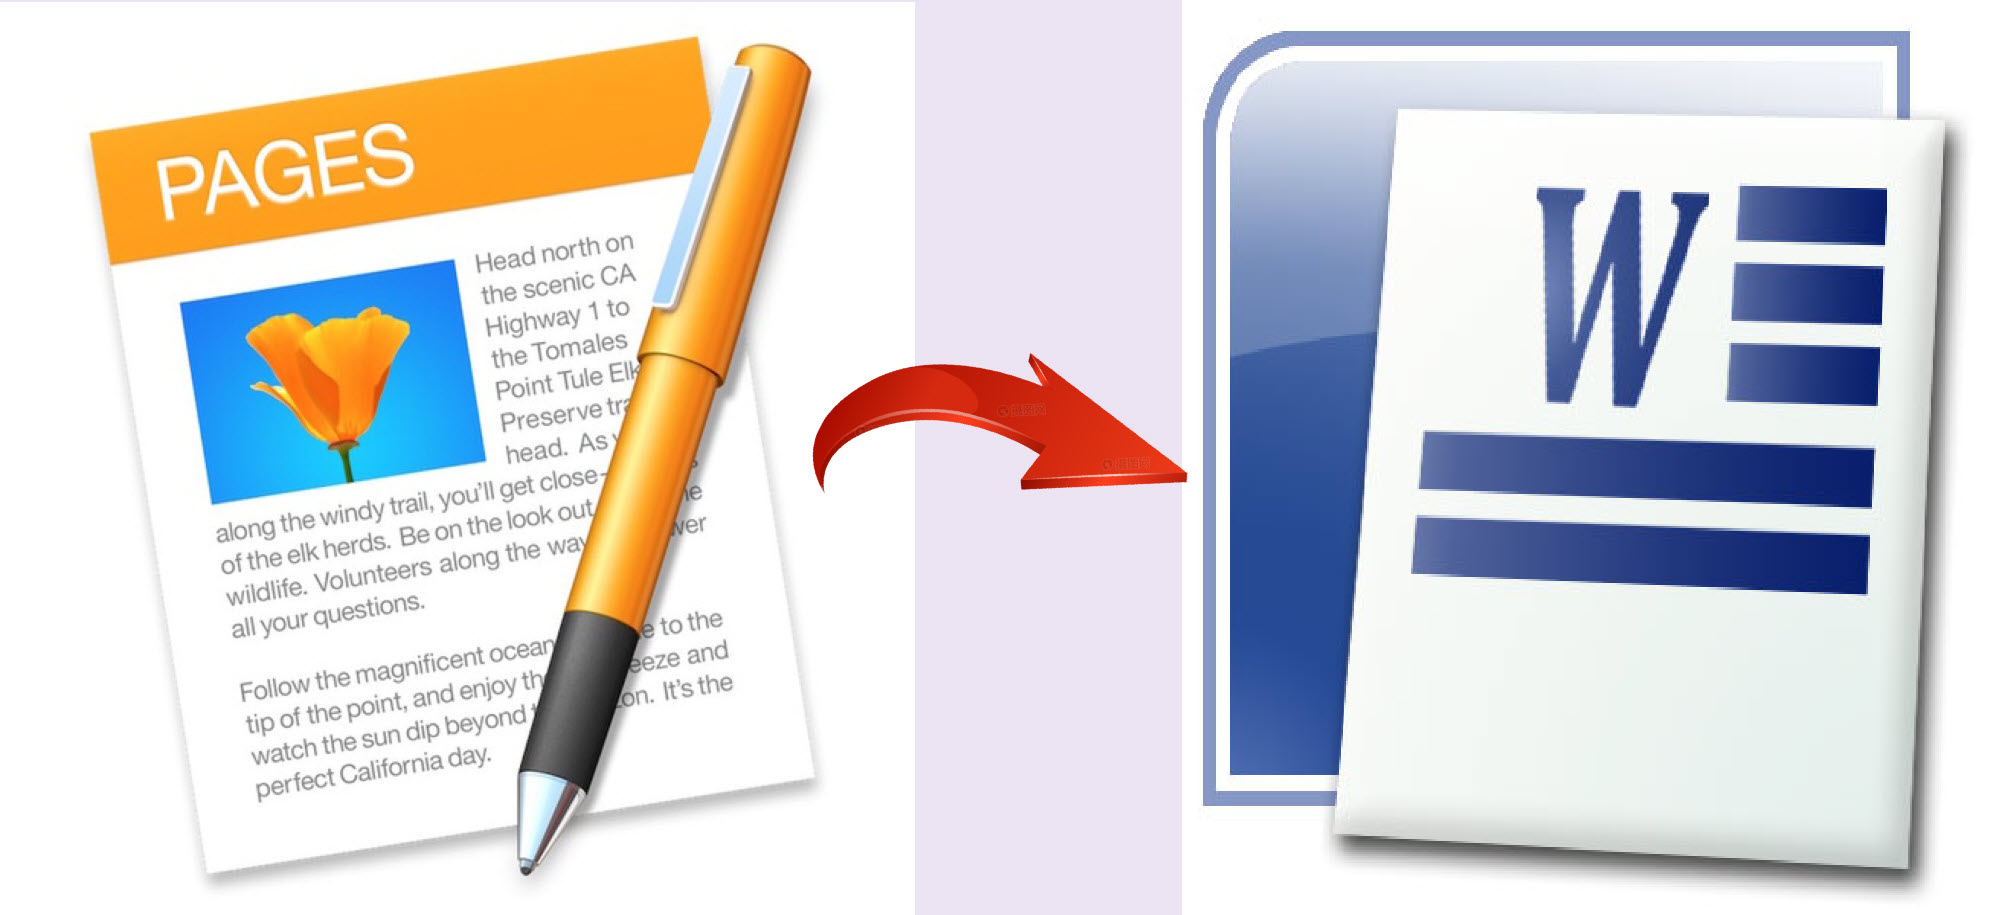 word to pdf,word,pages to word,how to open pages file on windows 10,how to split ms word file into multiple files,pages,convert pages file to word,pdf to word,convert pages file to word file,how to make a word file on pages,how to edit pdf file in microsoft word,ms word to pdf,how to remove extra pages in word file,how to get rid of extra pages in your word file,apple pages to word,ms word,mac pages to word,convert word to pdf file